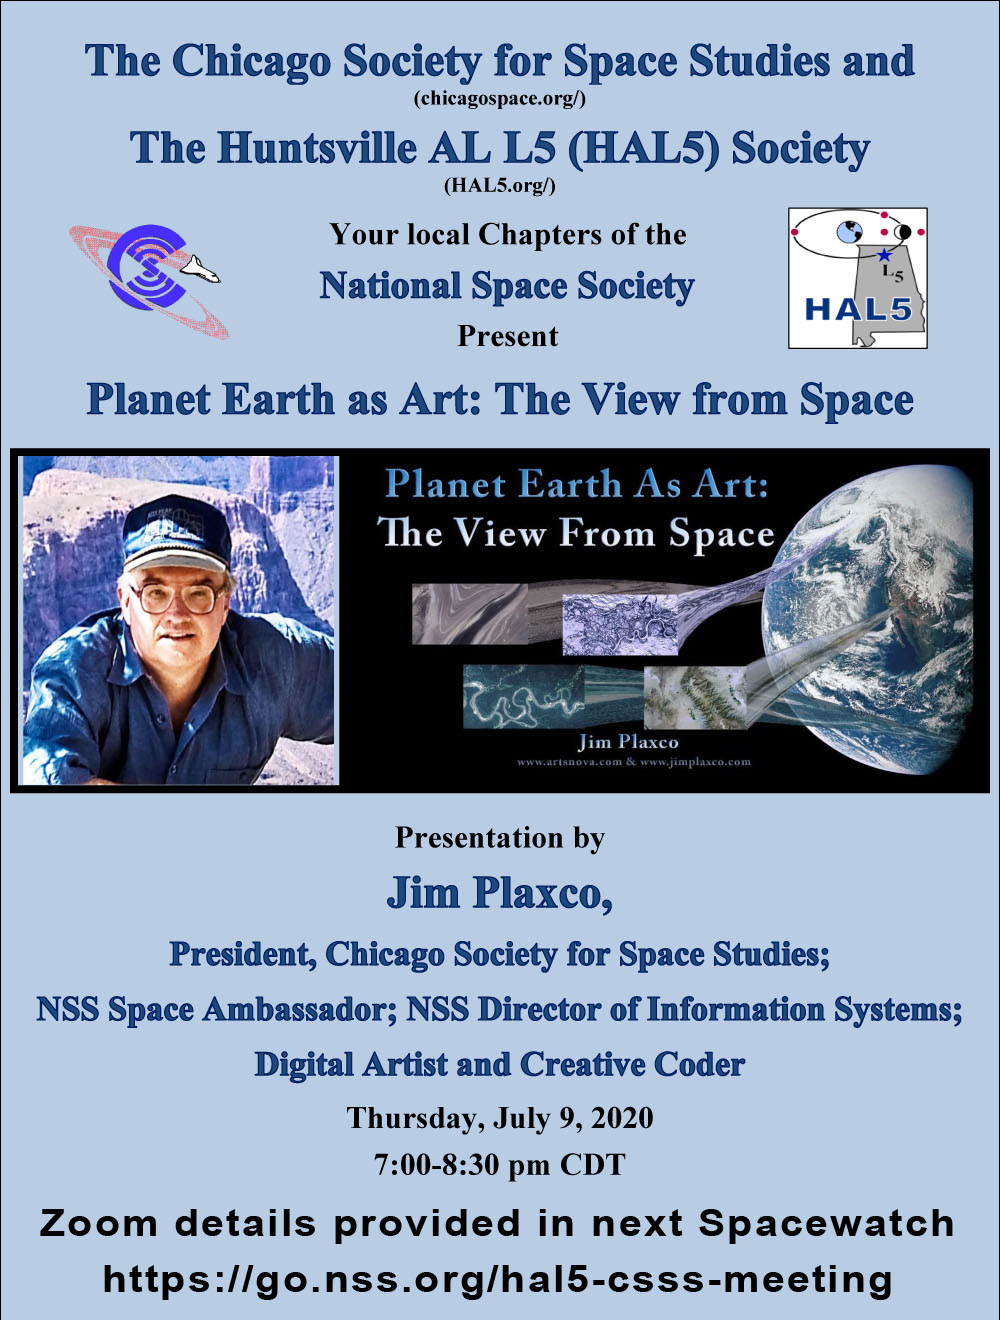 NSS CSSS HAL5 joint meeting flyer for Planet Earth as Art